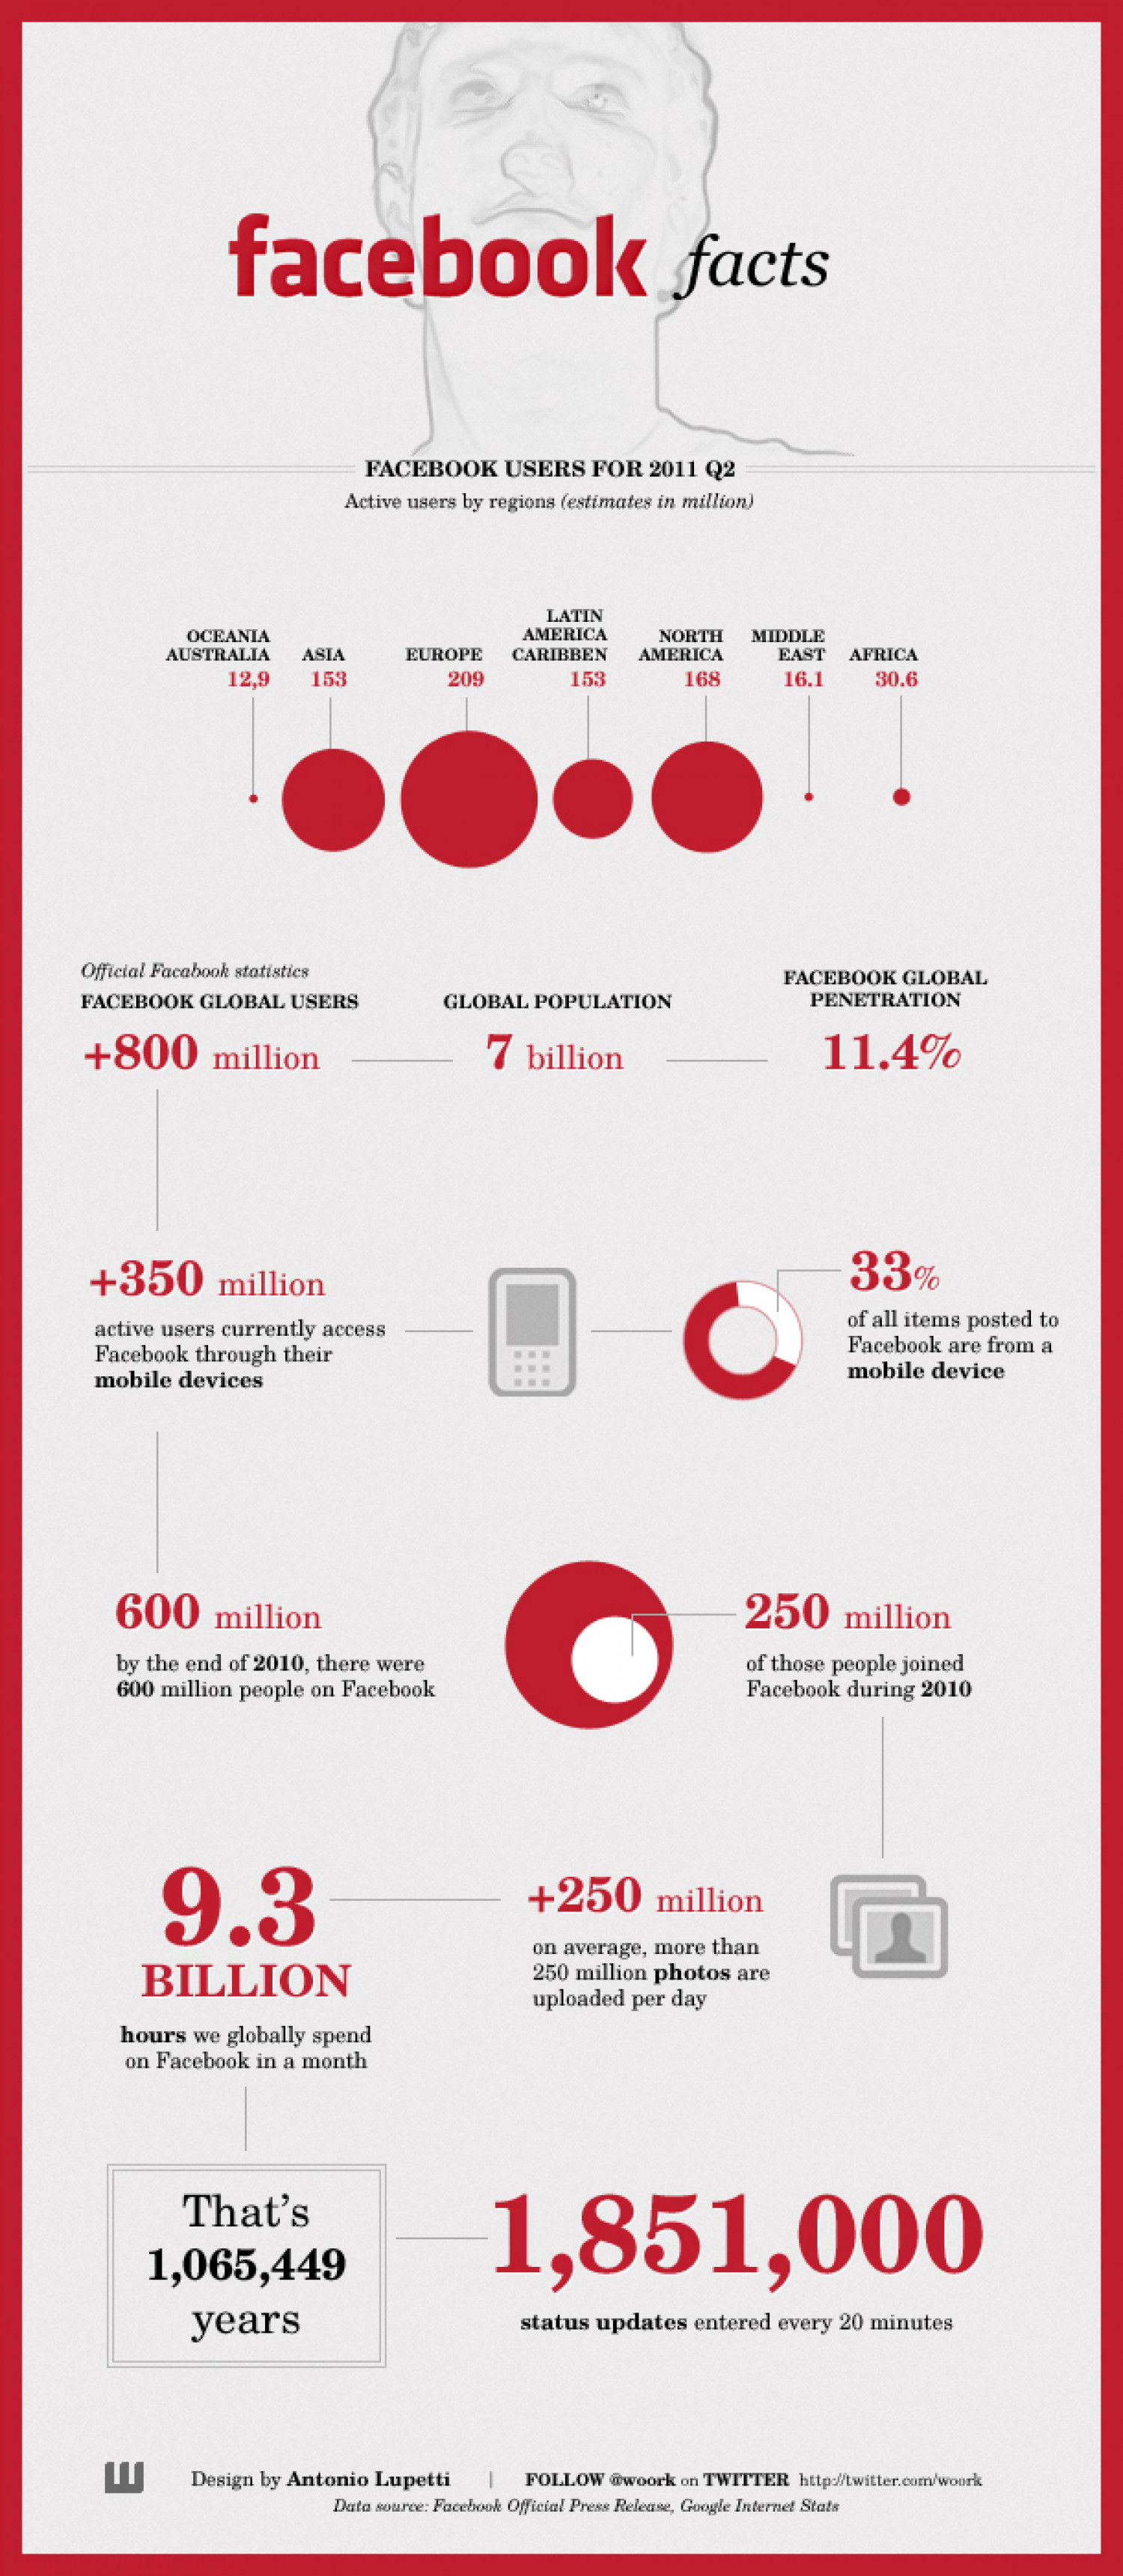 Facebook Facts 2011 Infographic